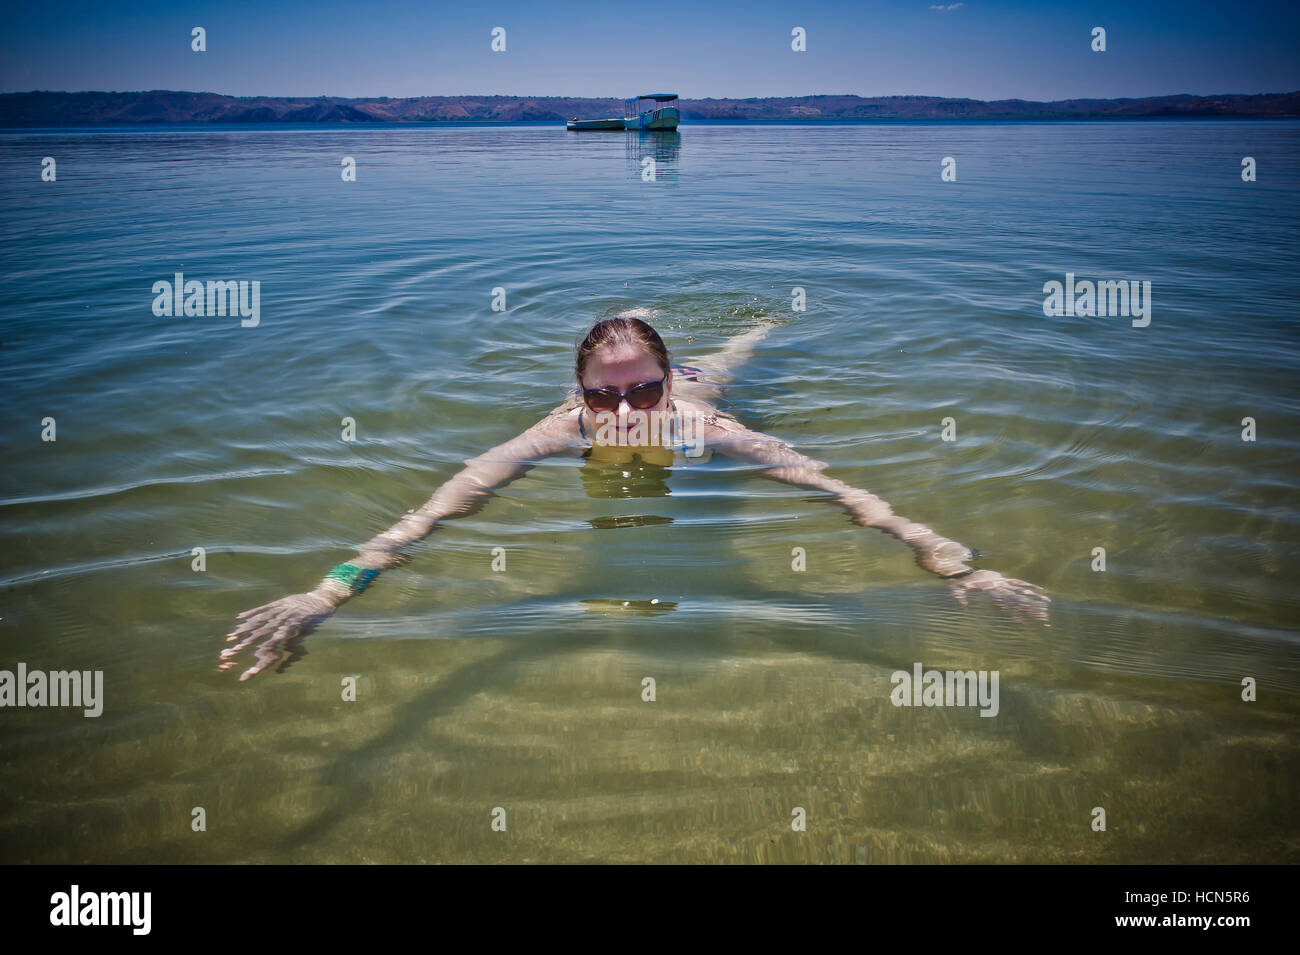 Woman swimming on a beach at Paapgayo Bay in Costa Rica - Stock Image